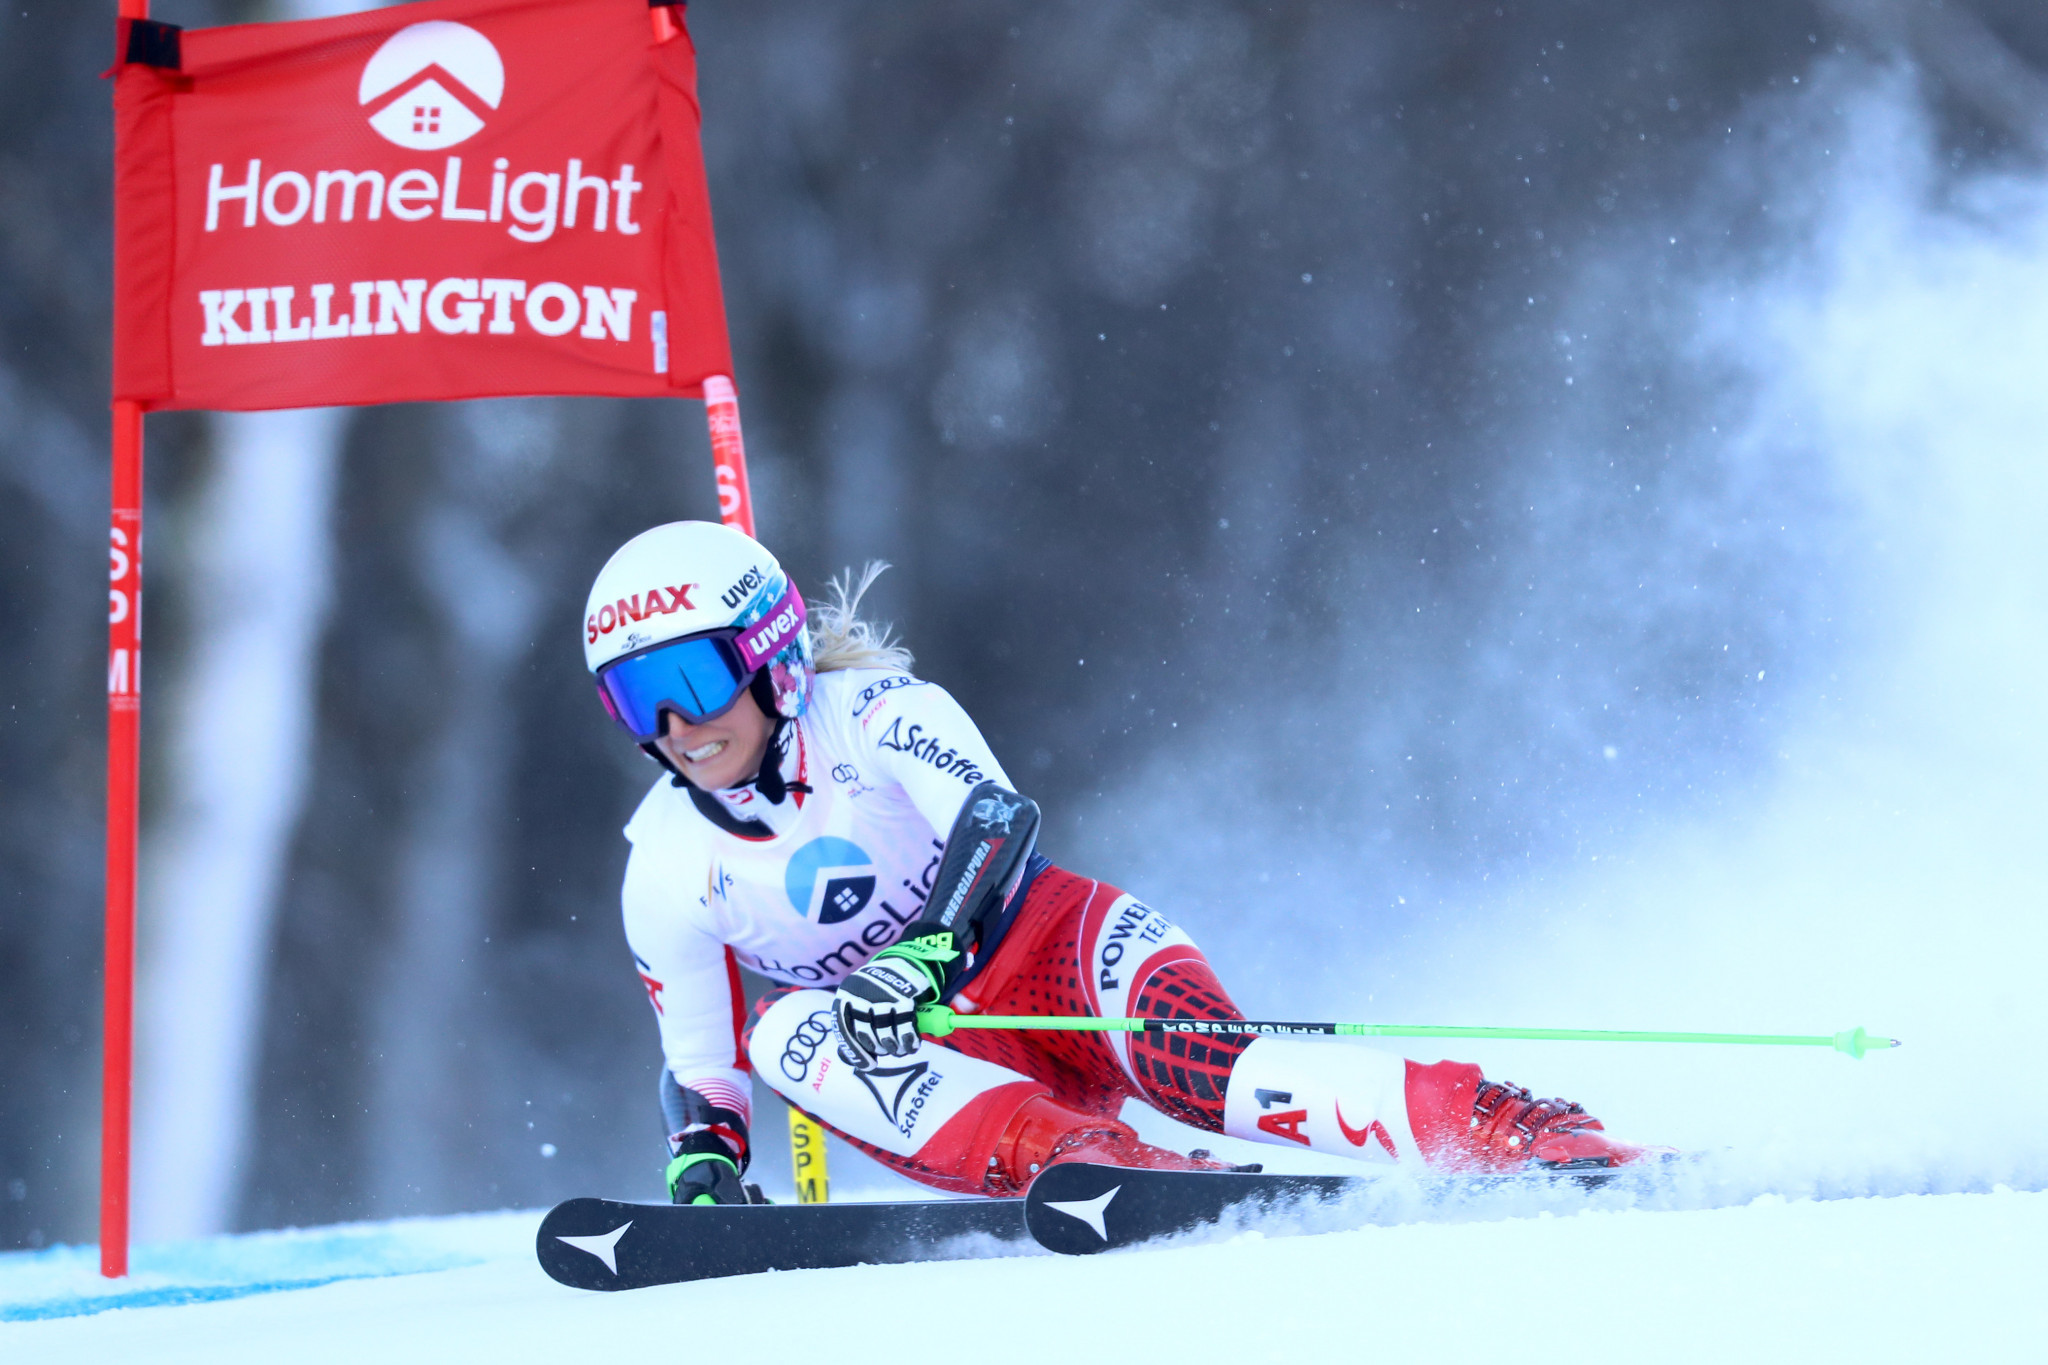 Killington World Cup Foundation awards grants to support winter sports infrastructure